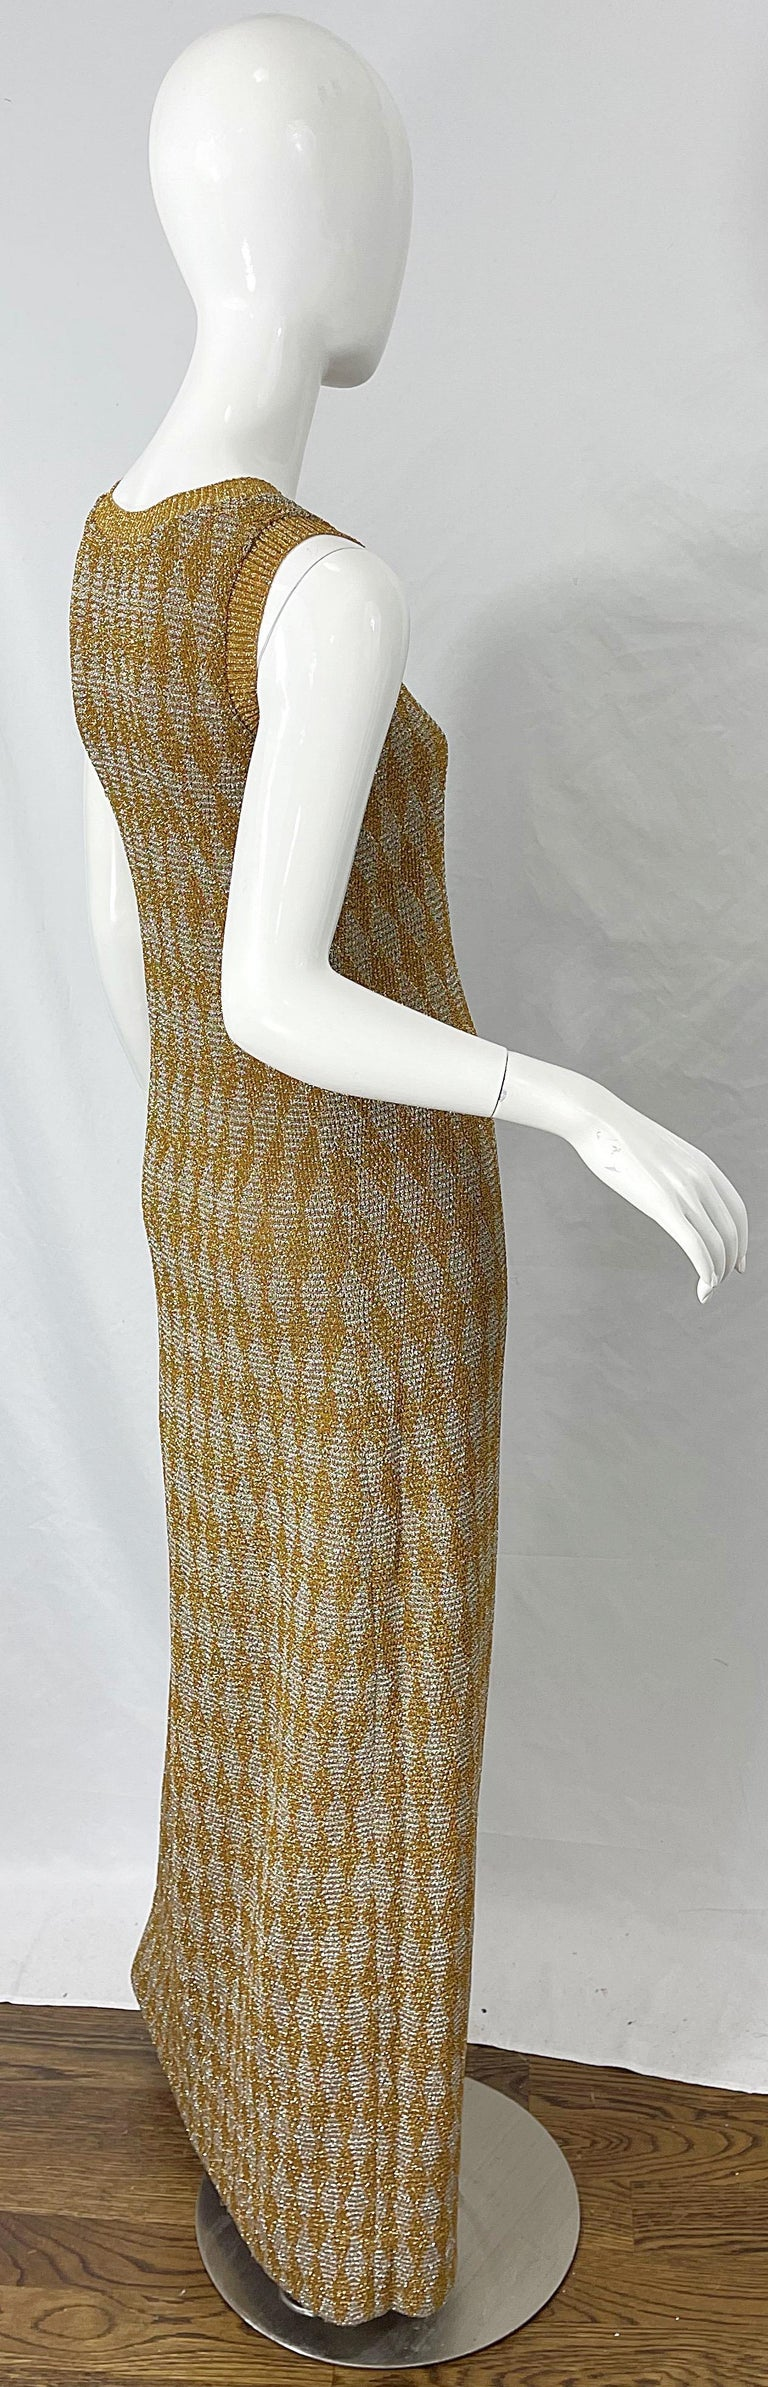 1970s Halston NWT Gold + Silver 70s Vintage Lurex Gown + Duster Cardigan For Sale 5